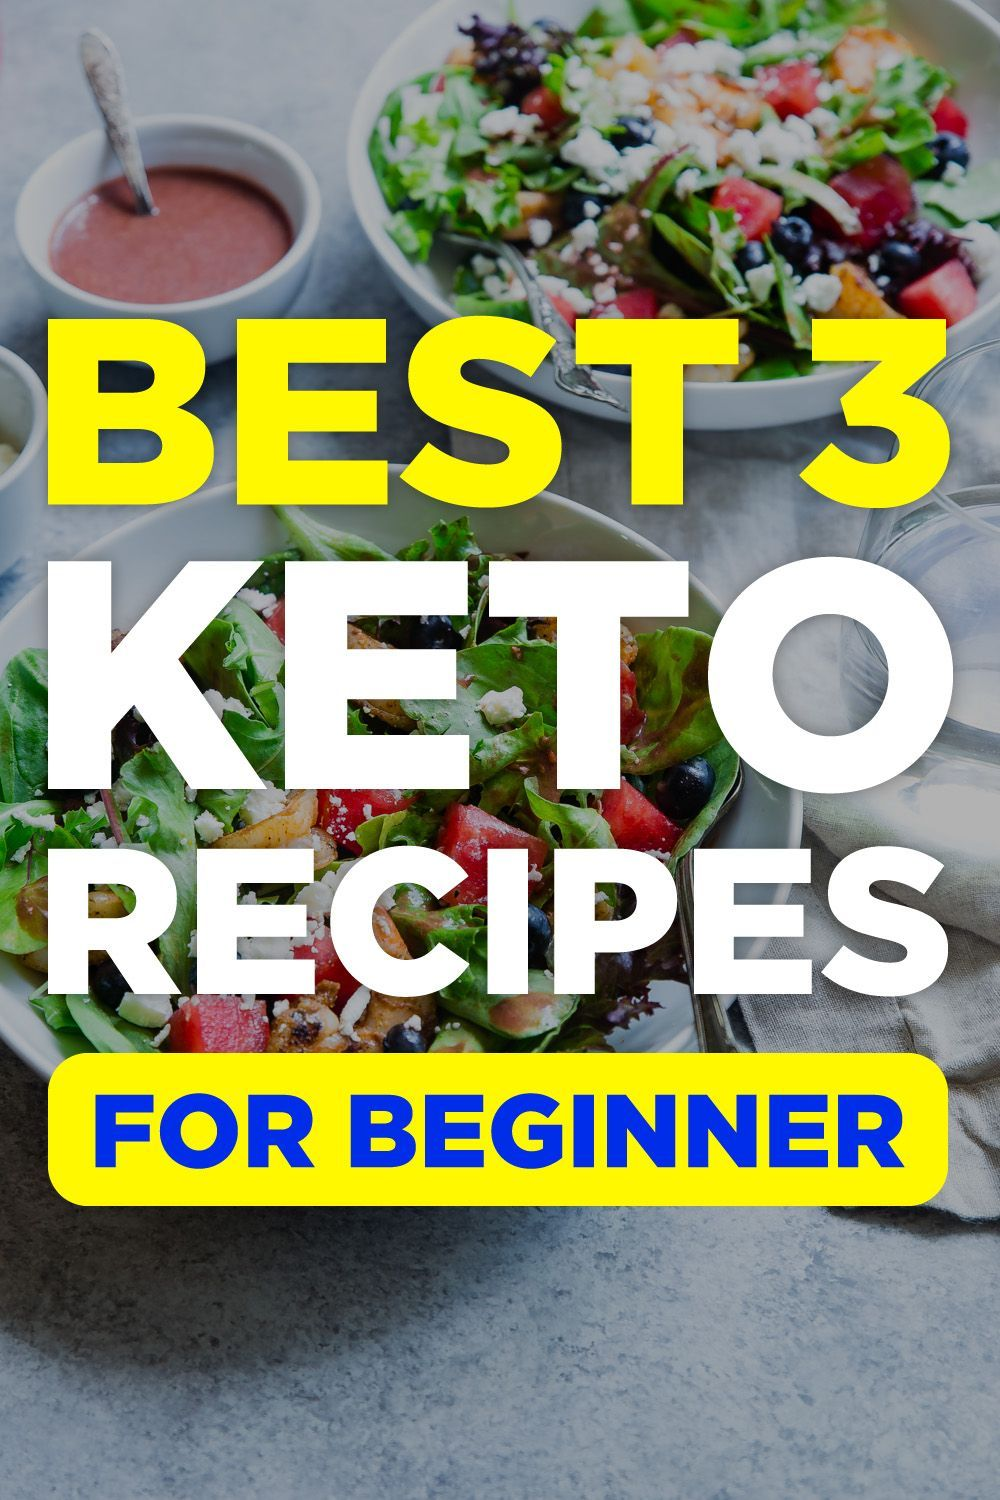 Best 3 Keto Diet, weight loss eating plan, 	modified paleo diet, 	myfitnesspal recipes,  #myfitnesspalrecipes weight loss eating plan, 	modified paleo diet, 	myfitnesspal recipes,  low carb recipes meals, 	workouts plans for weight loss, 	how to lose 20lbs,  keto recipes for beginners, 	diet plans for weight loss, 	healthy snacks for weight loss,  why cant i lose weight articles, 	keto diet safe, 	keto diet meal prep,  low carb snacking, 	clean keto recipes, 	low carb diet list,  weight watch re #myfitnesspalrecipes